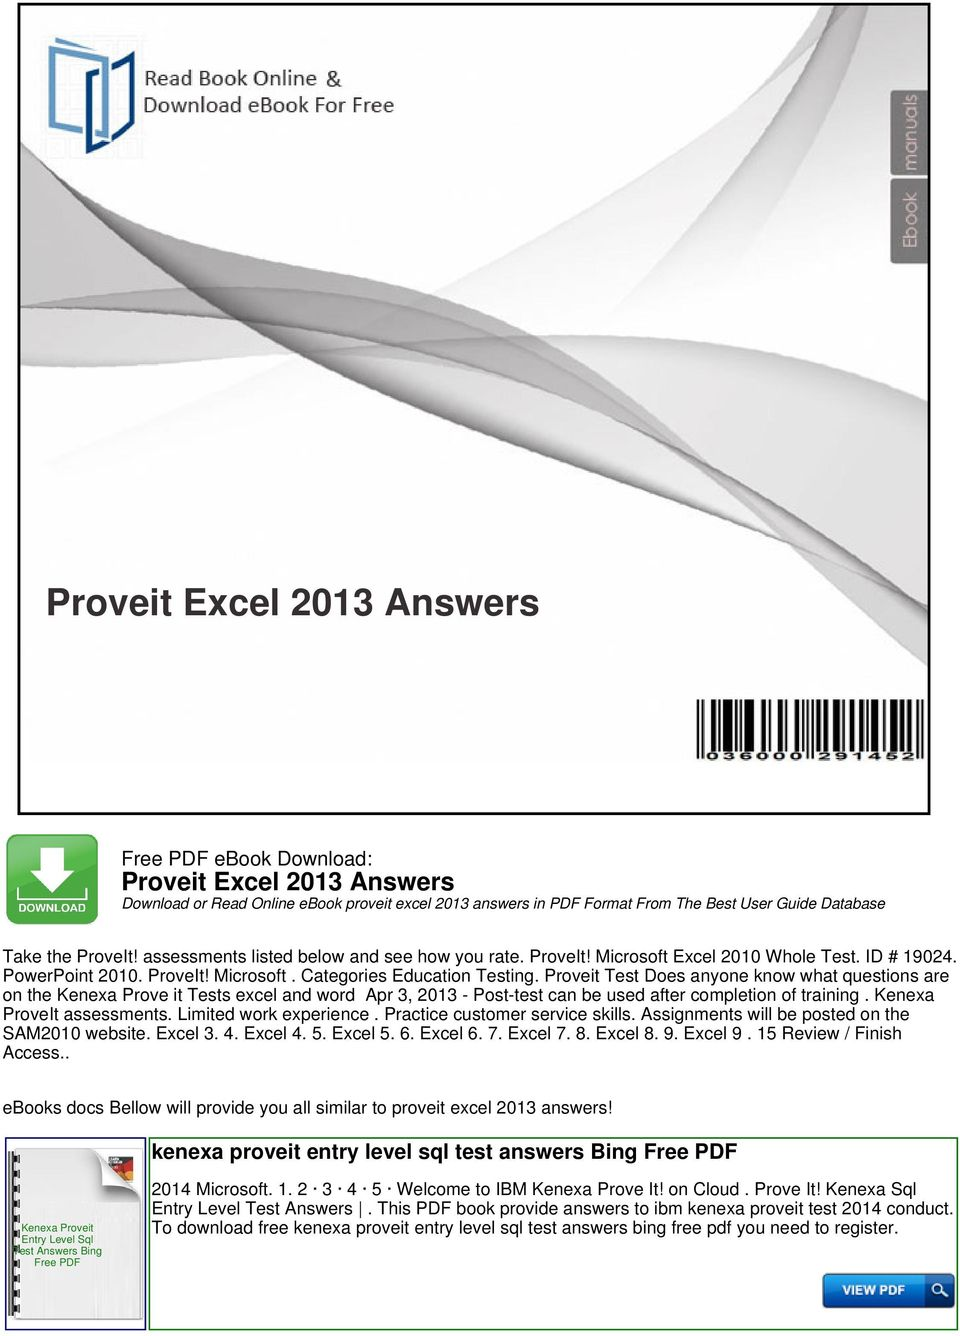 Proveit excel 2013 answers pdf proveit test does anyone know what questions are on the kenexa prove it tests excel and fandeluxe Images